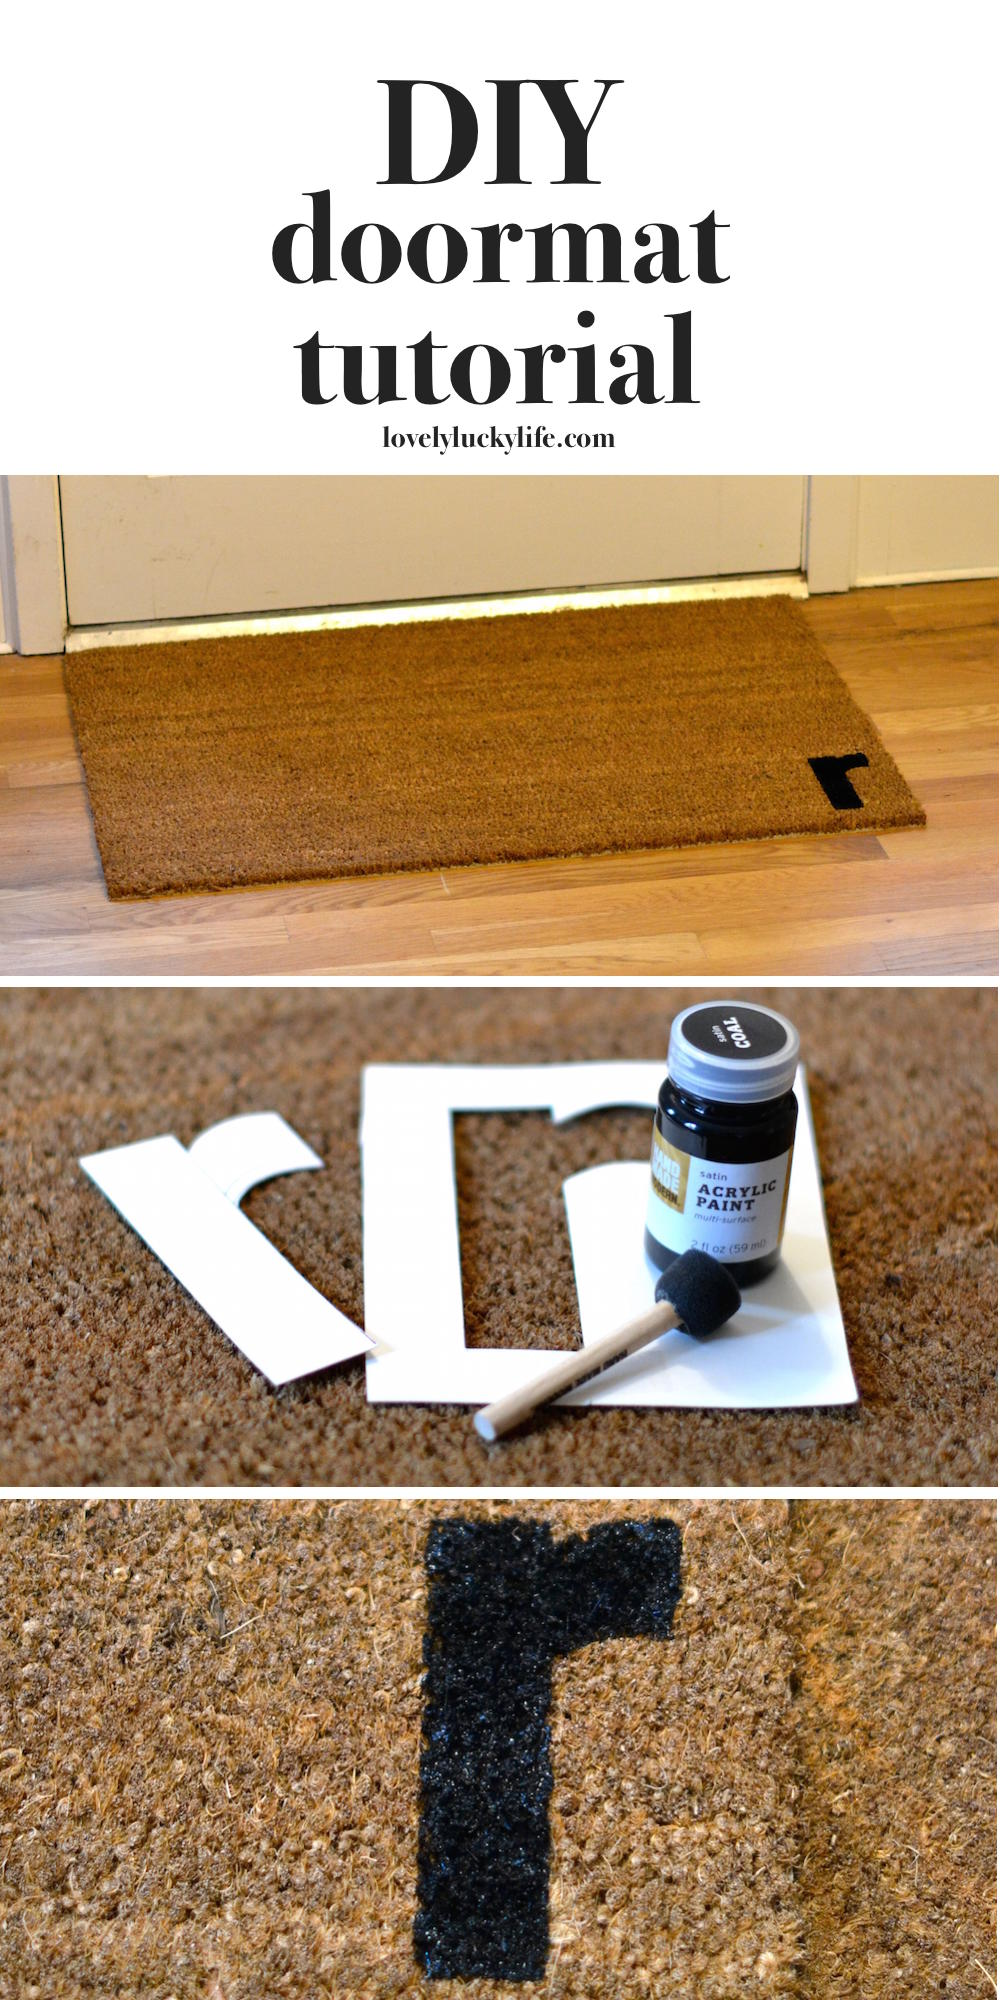 DIY custom initial doormat how-to // lovelyluckylife.com